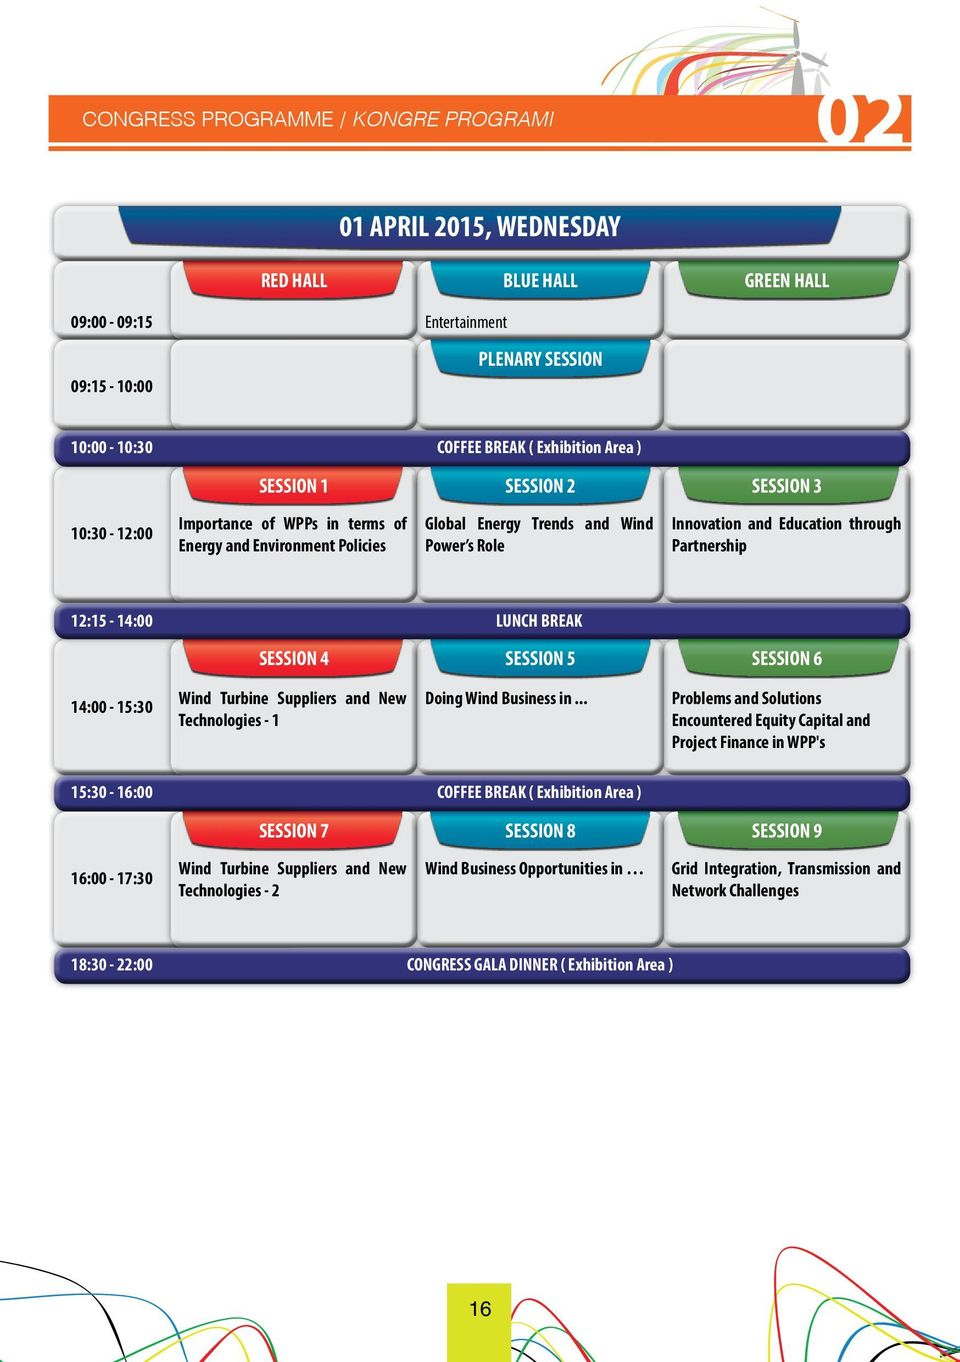 through Partnership 12:15-14:00 LUNCH BREAK SESSION 4 SESSION 5 SESSION 6 14:00-15:30 Wind Turbine Suppliers and New Technologies - 1 Doing Wind Business in.